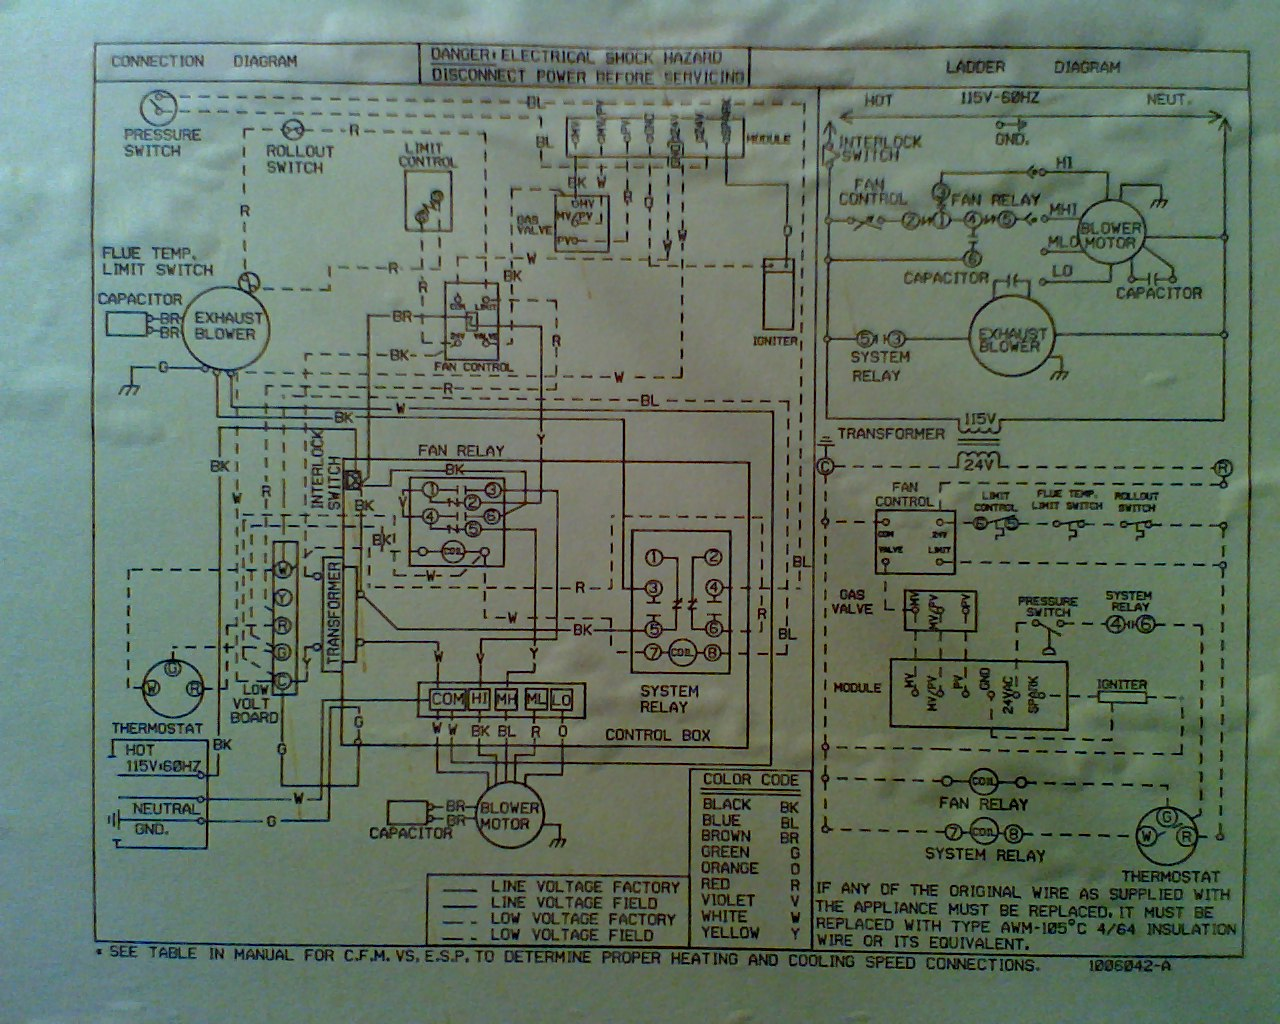 2009 11 20_231603_1120091711a air conditioner y wire grihon com ac, coolers & devices tempstar heat pump wiring diagram at mifinder.co